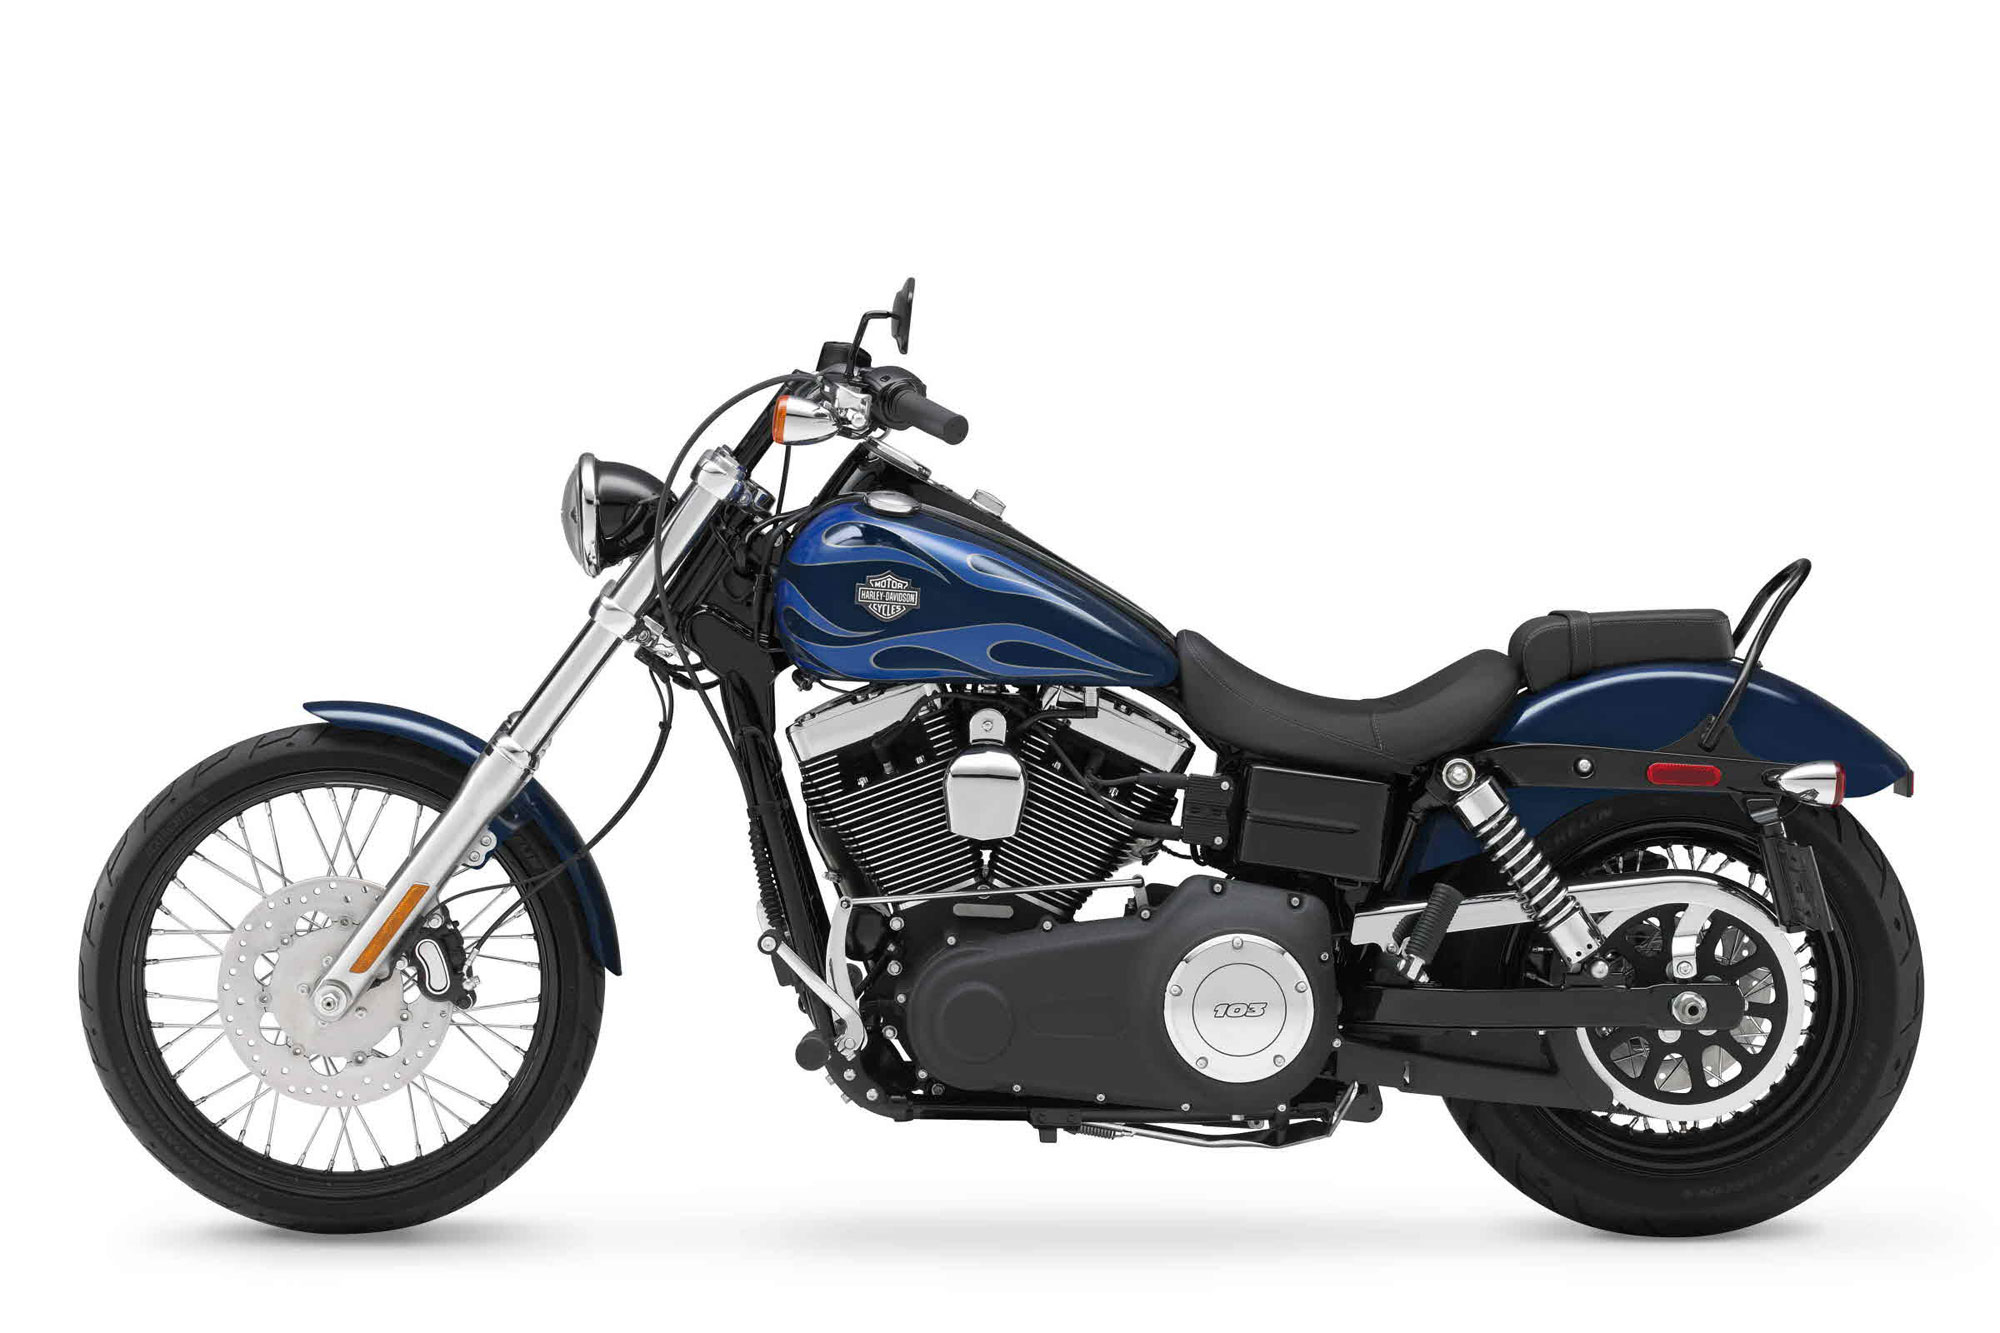 Harley Davidson Fxdwg Wiring Diagram Trusted For 1979 Sportster 2012 Dyna